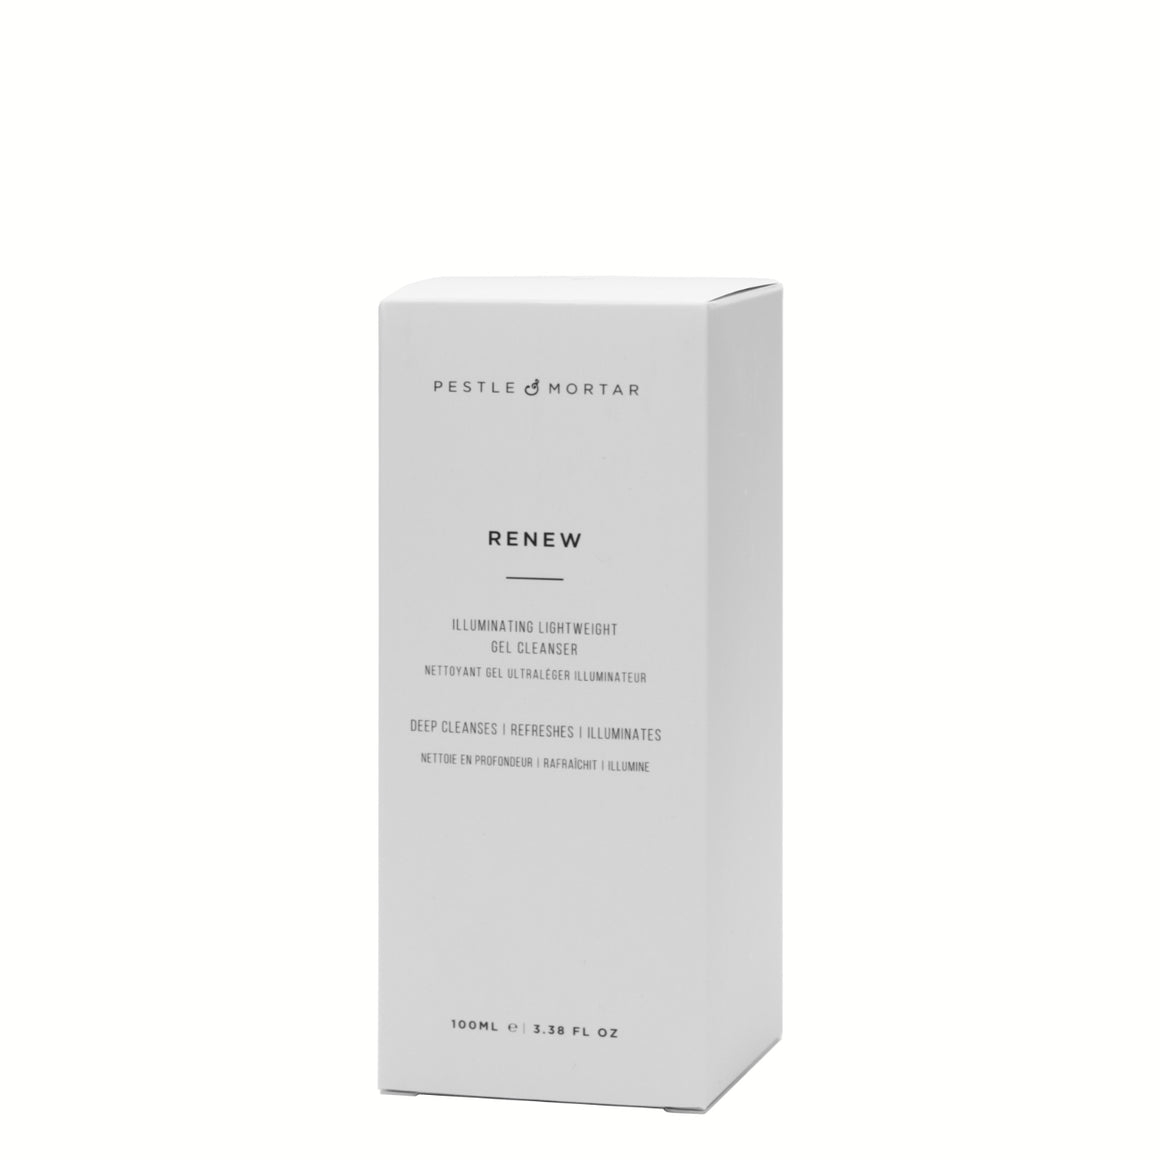 Pestle & Mortar Renew Gel Cleanser valomasis gelis - About.Skin